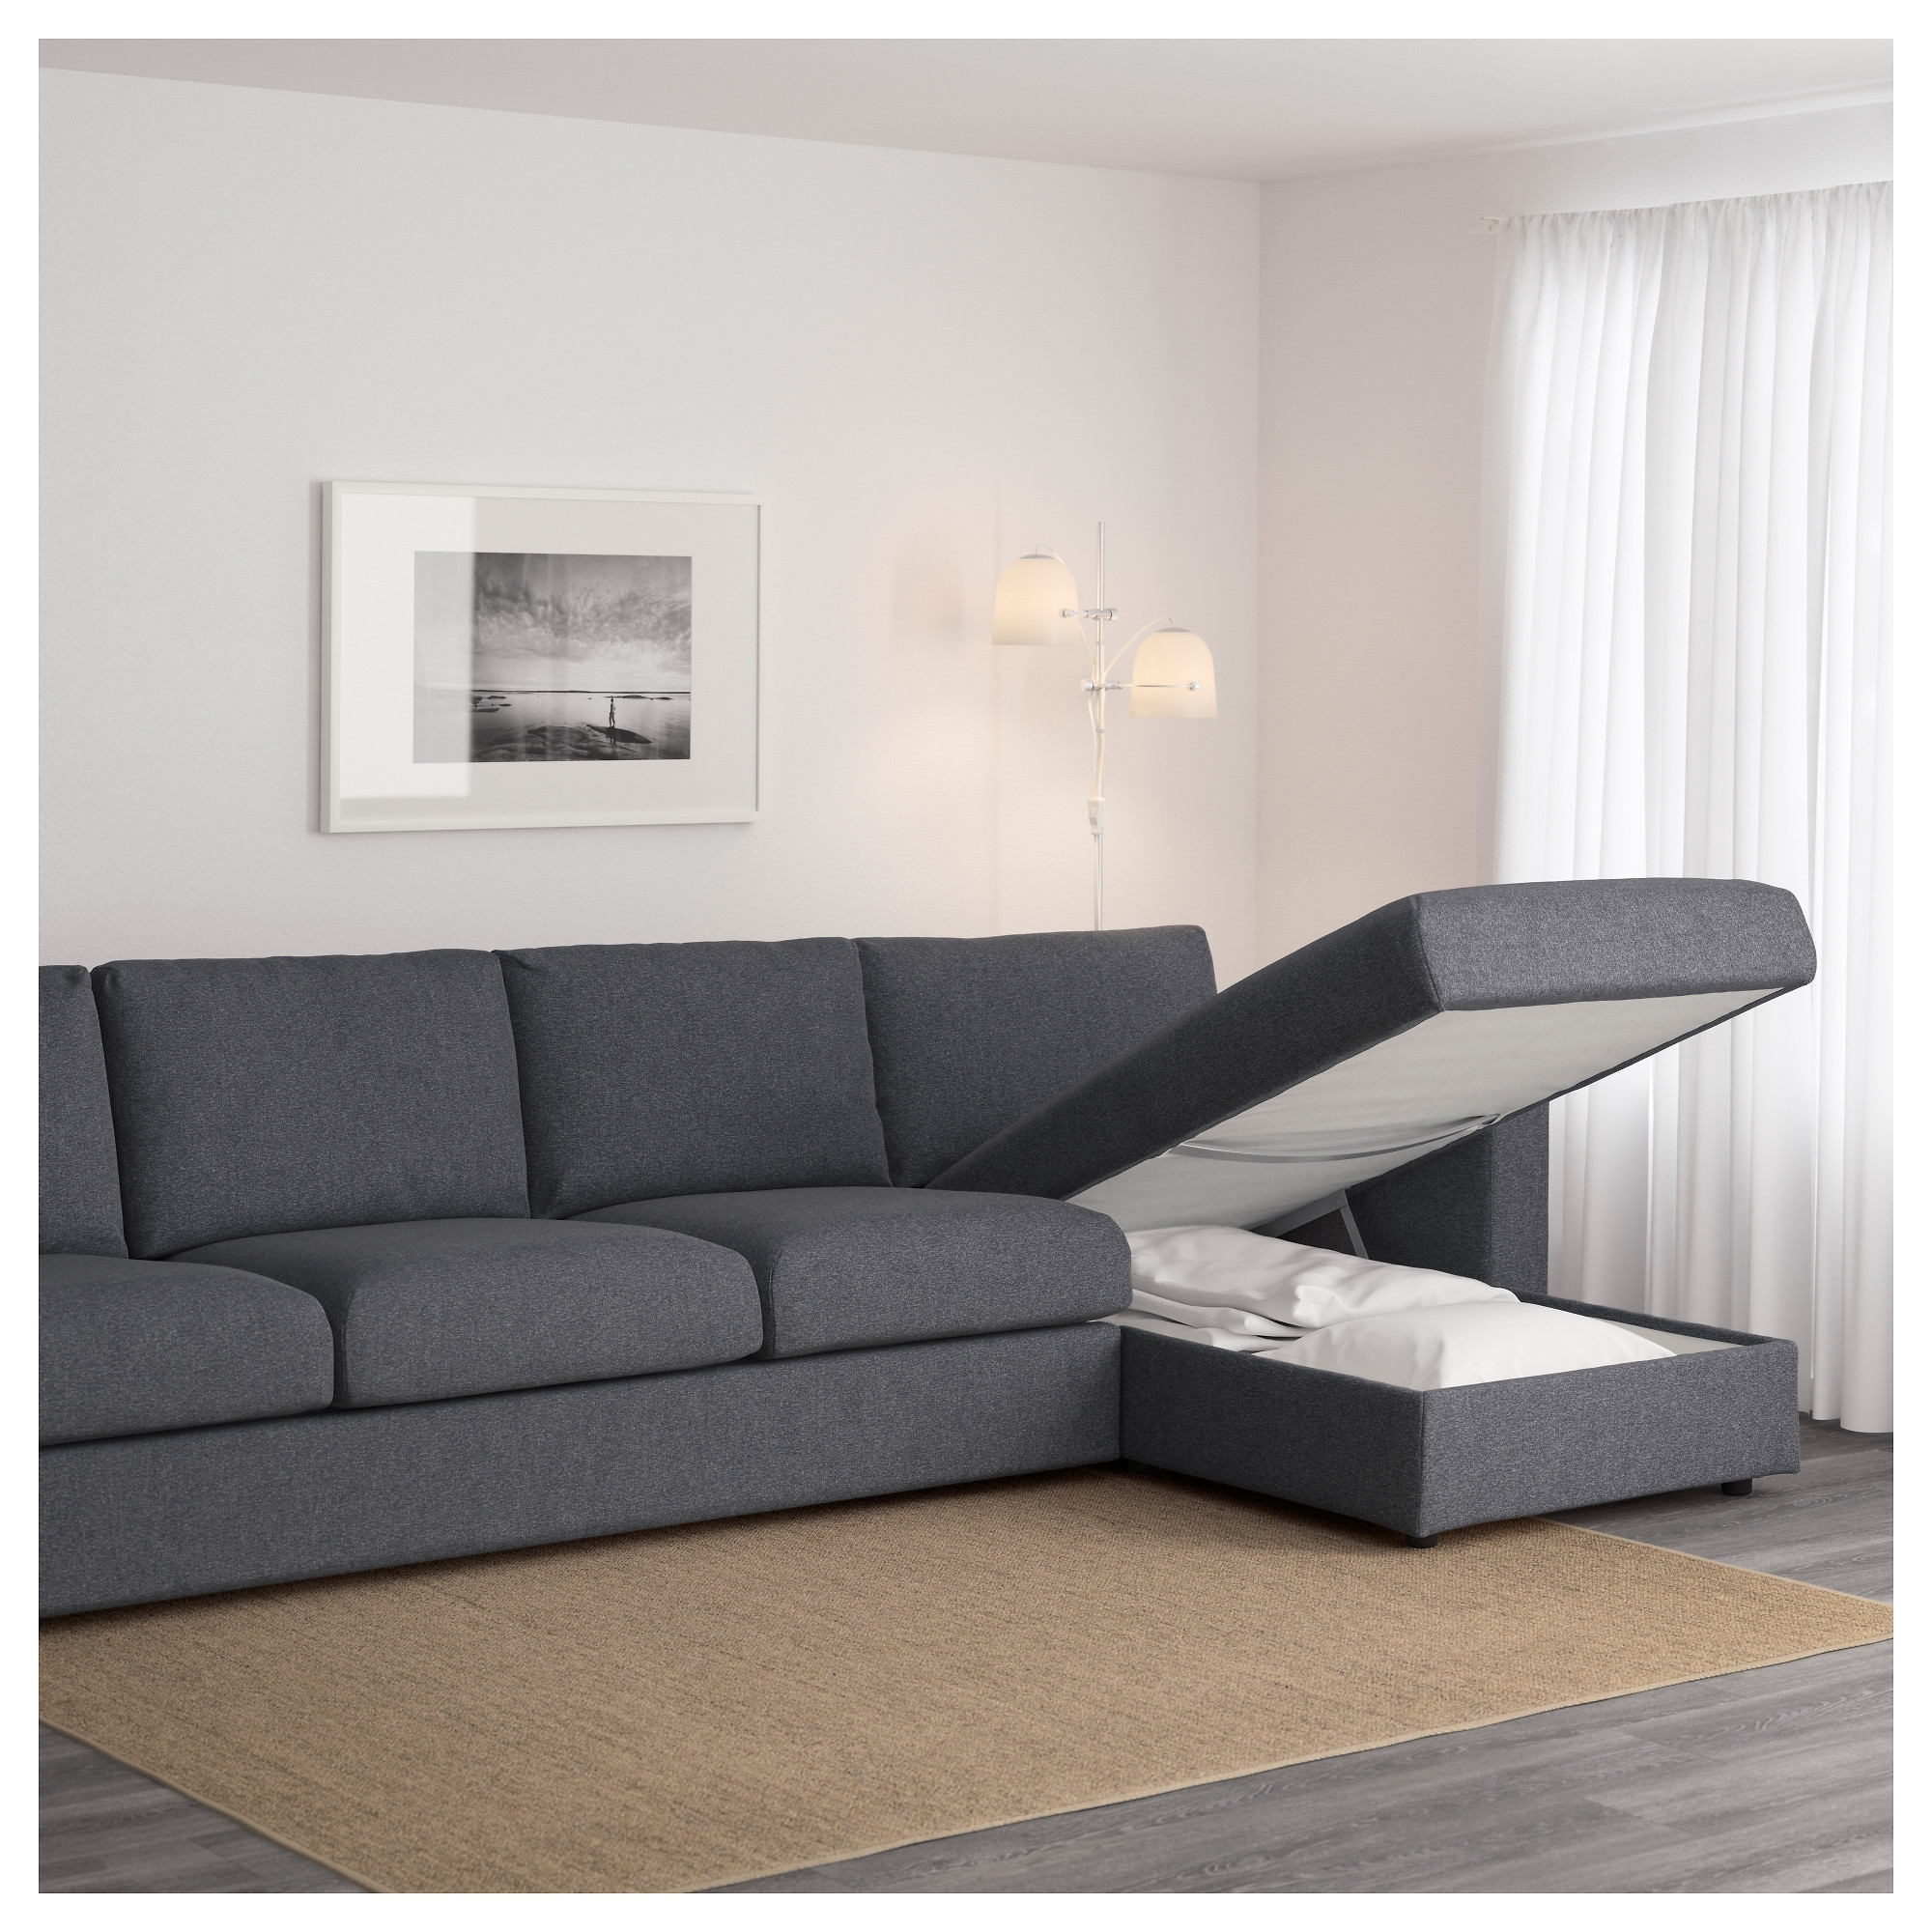 Vimle 4 Seat Sofa With Chaise Longue/gunnared Medium Grey – Ikea Intended For 2017 4 Seat Sofas (View 13 of 15)